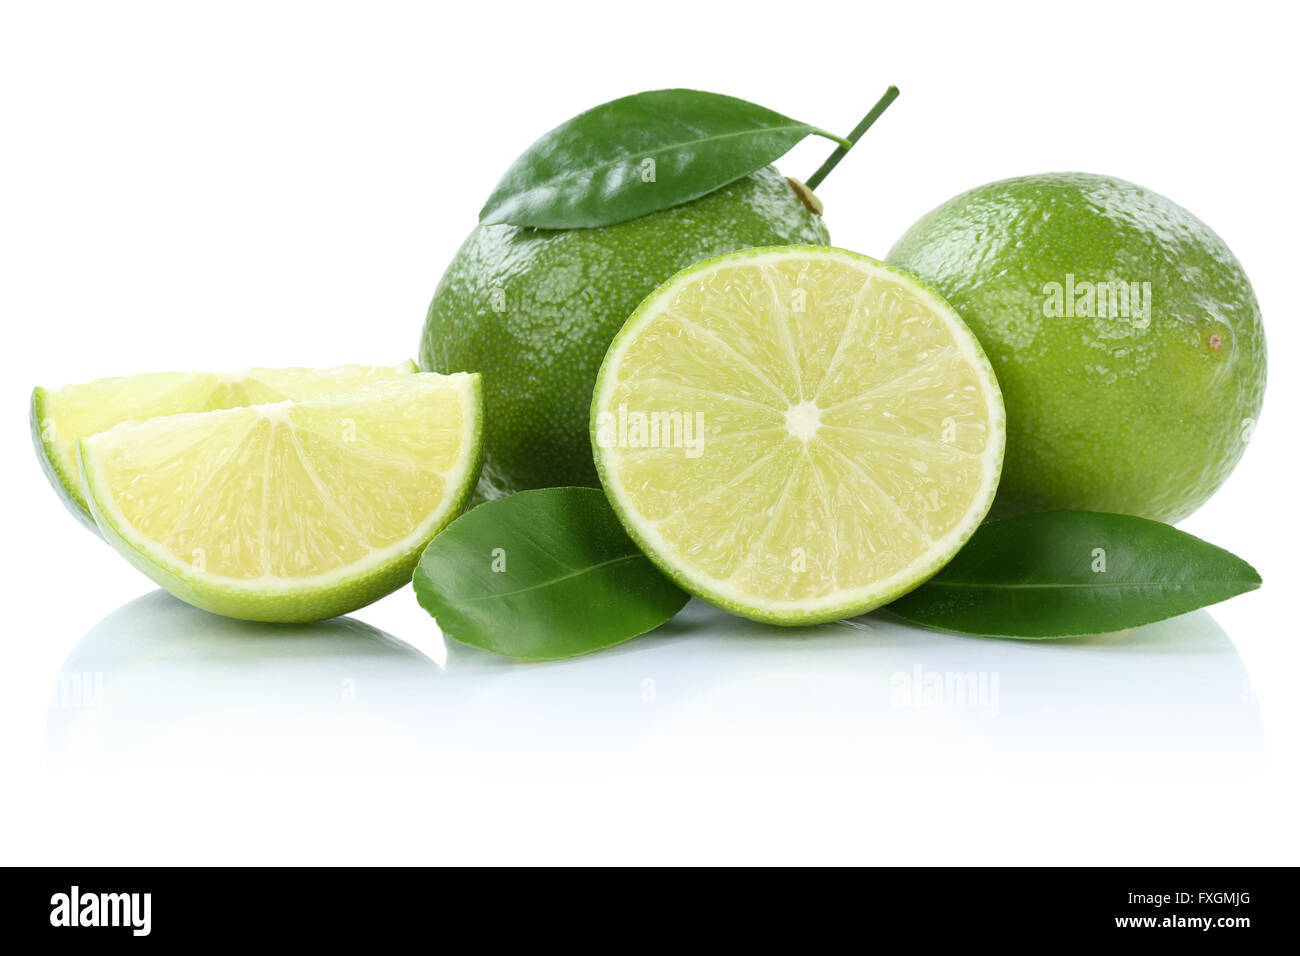 Lime limes fruits isolated on a white background - Stock Image